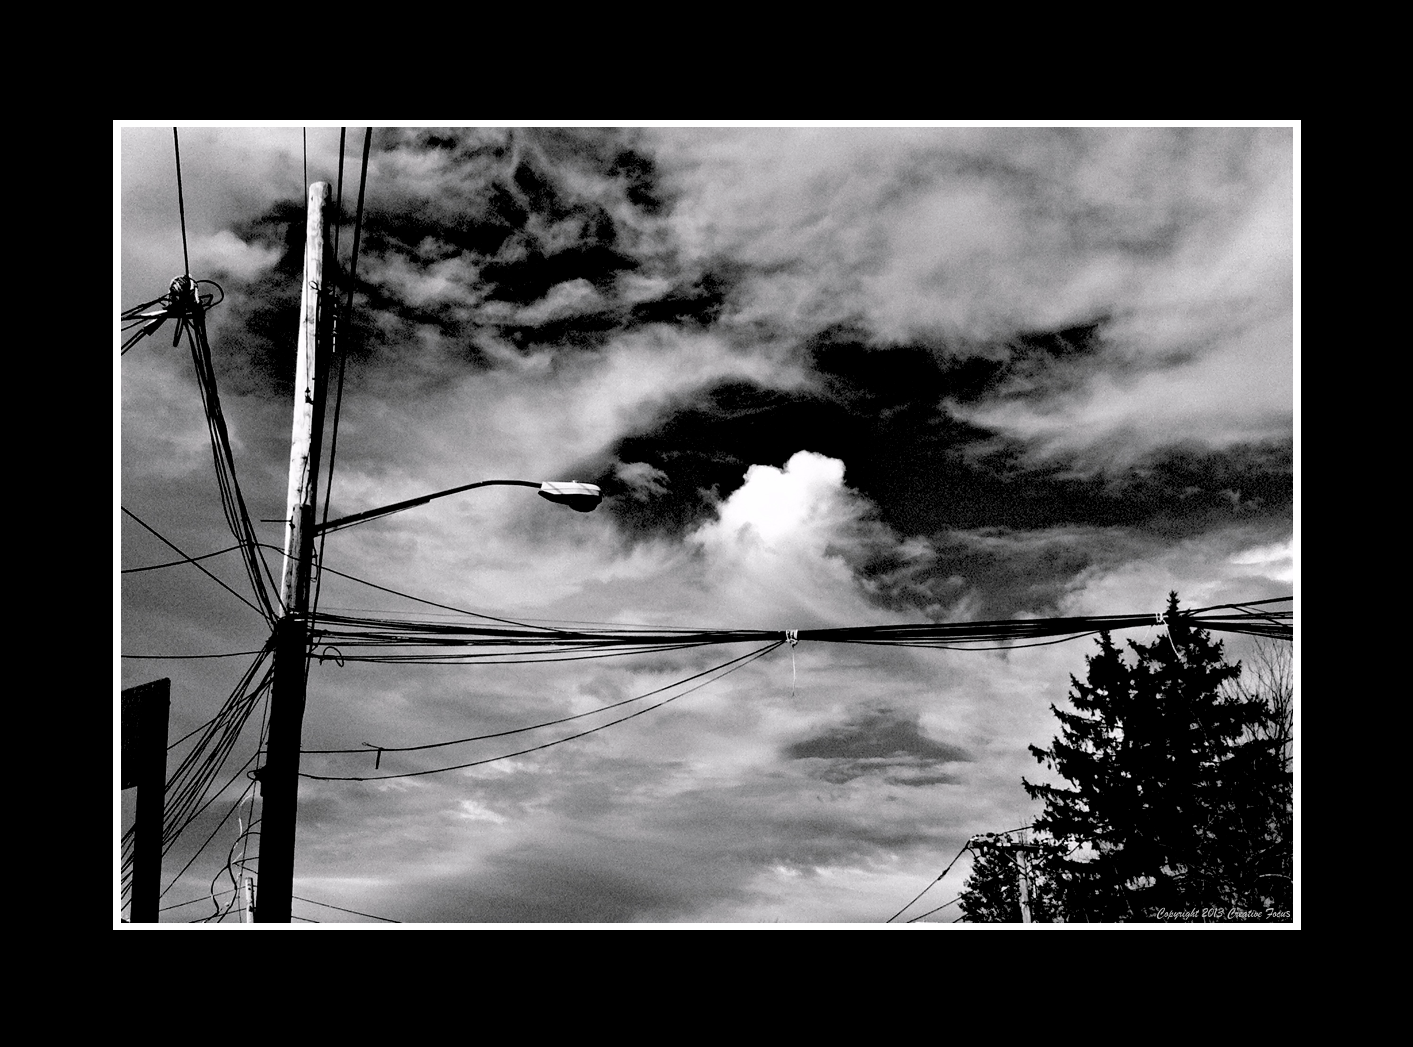 911...What's Your Emergency? Peace. by Trippy4U